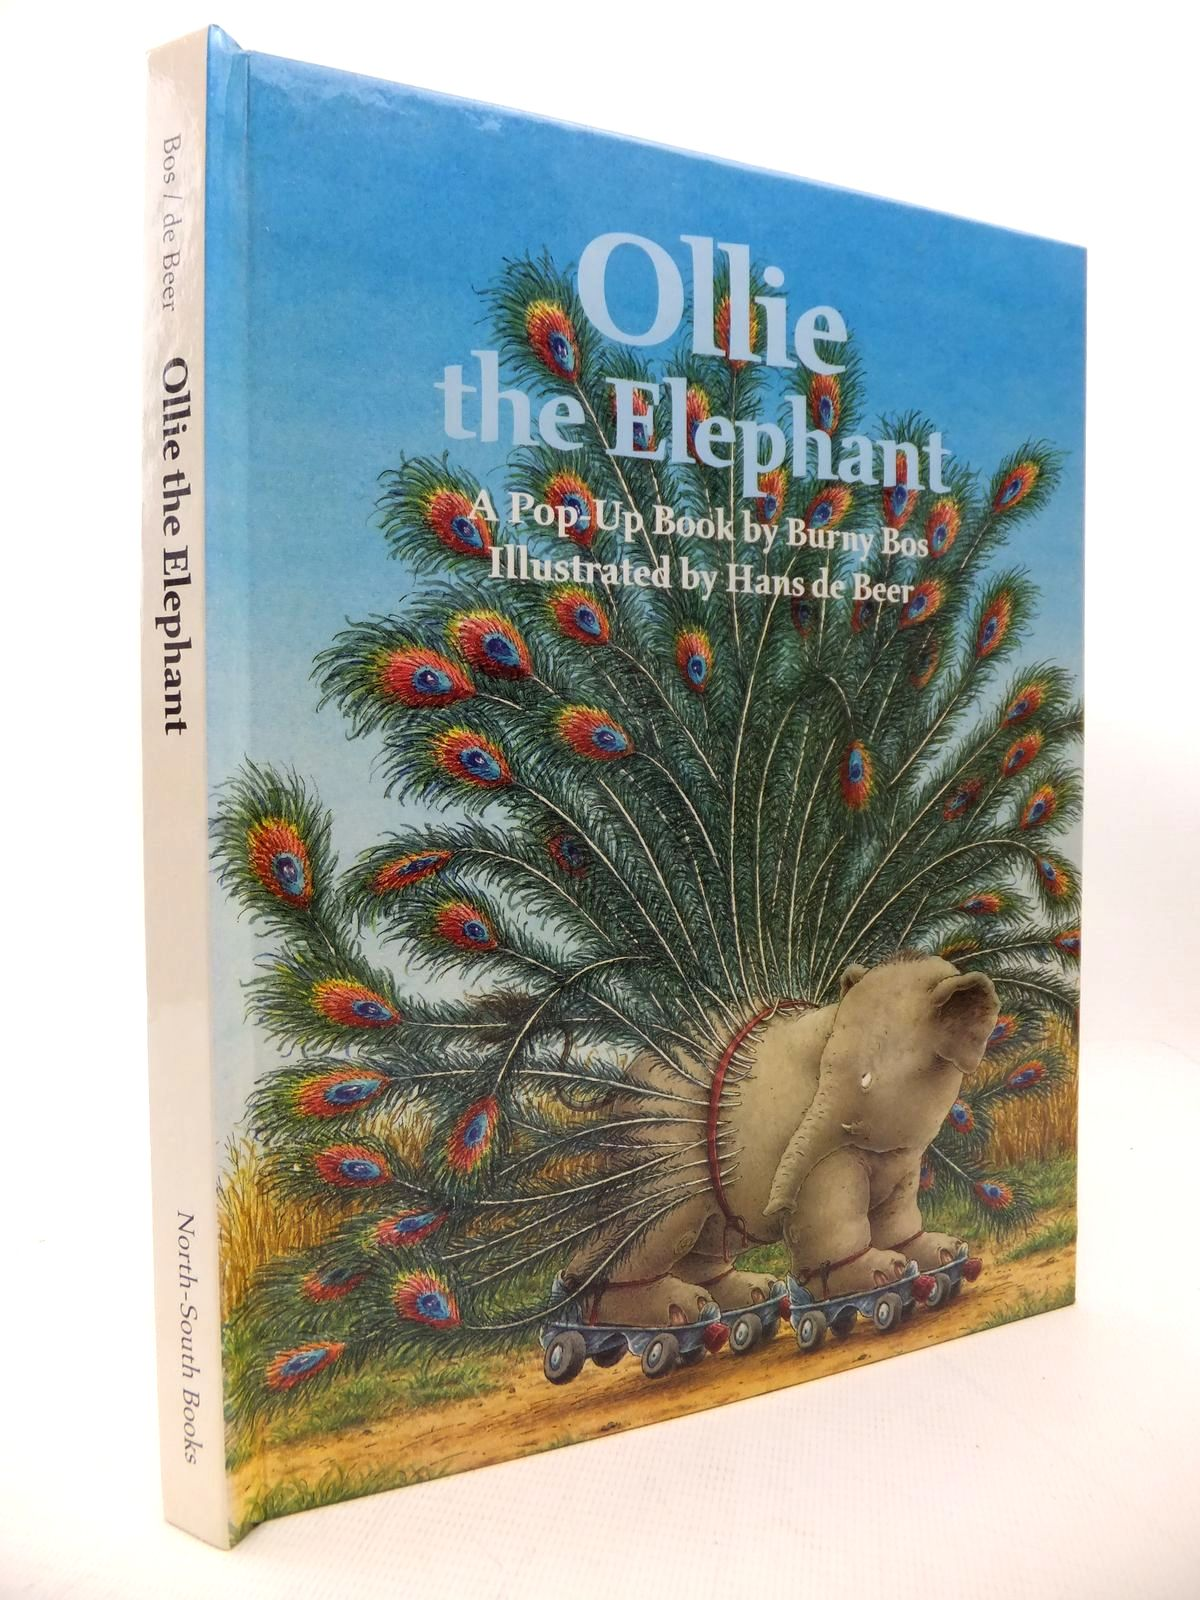 Photo of OLLIE THE ELEPHANT written by Bos, Burny illustrated by De Beer, Hans published by North South Books (STOCK CODE: 1813877)  for sale by Stella & Rose's Books